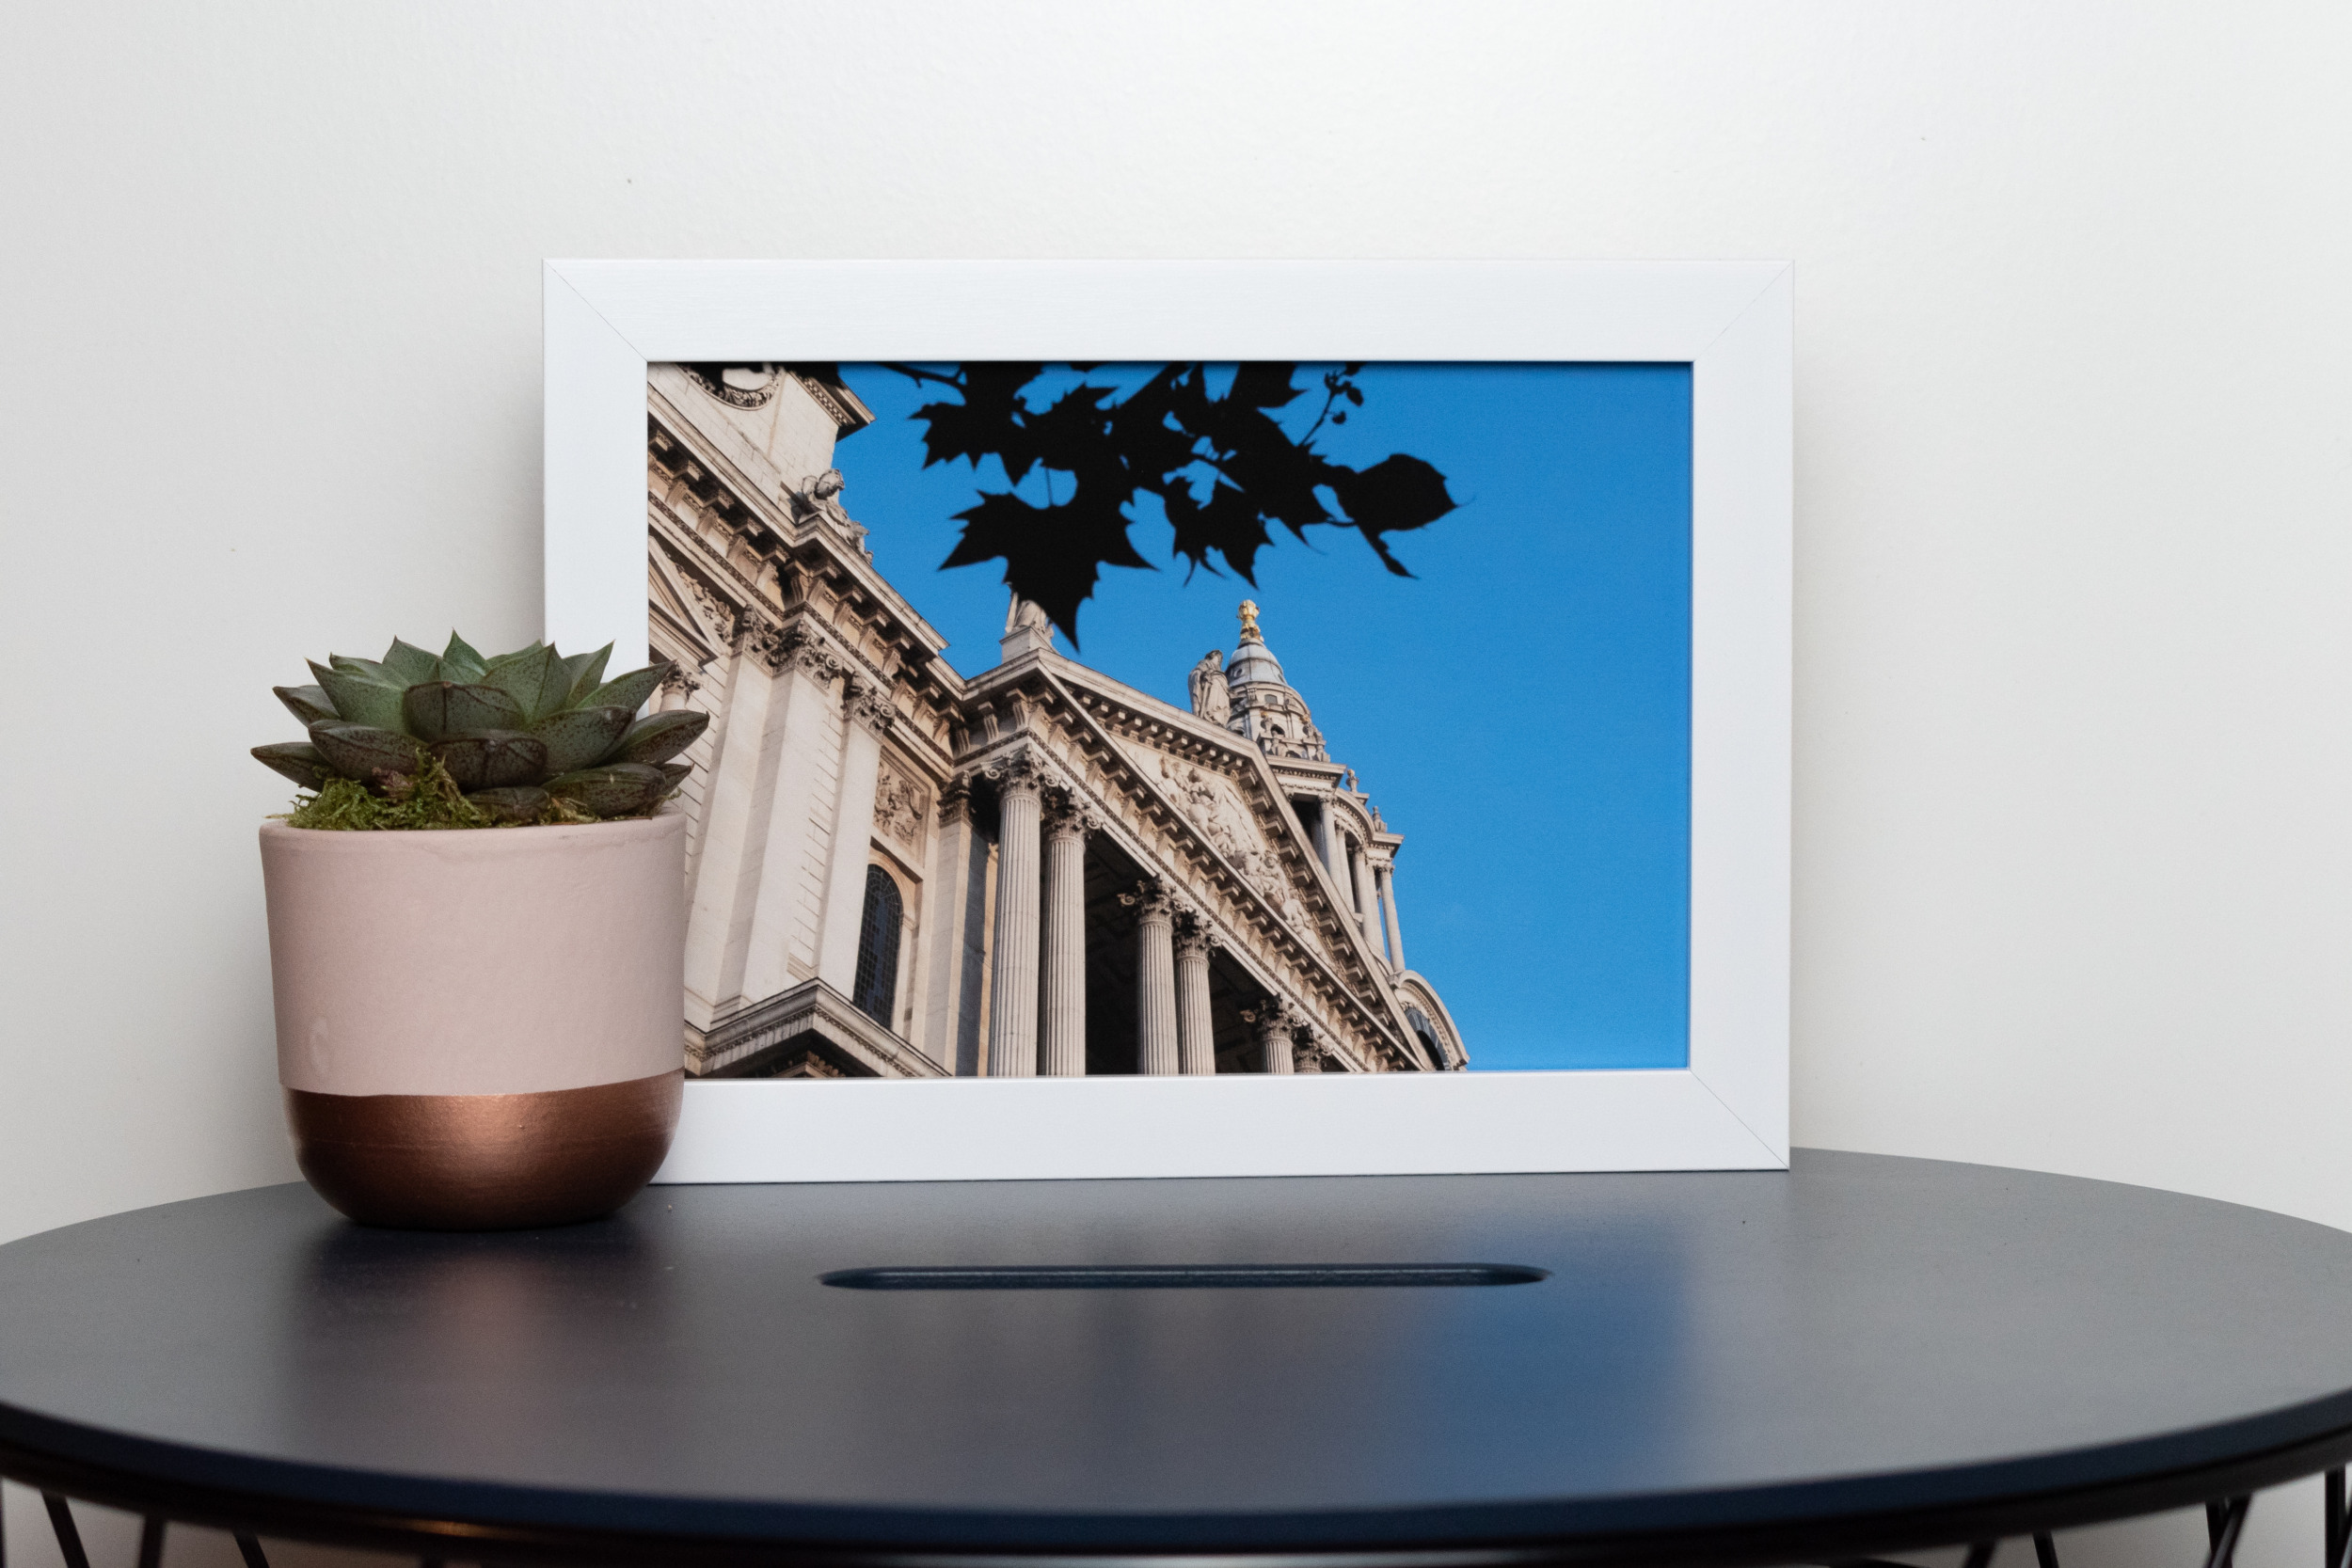 Framed A5 Victoria Broad Photography print of St Pauls, in white frame.